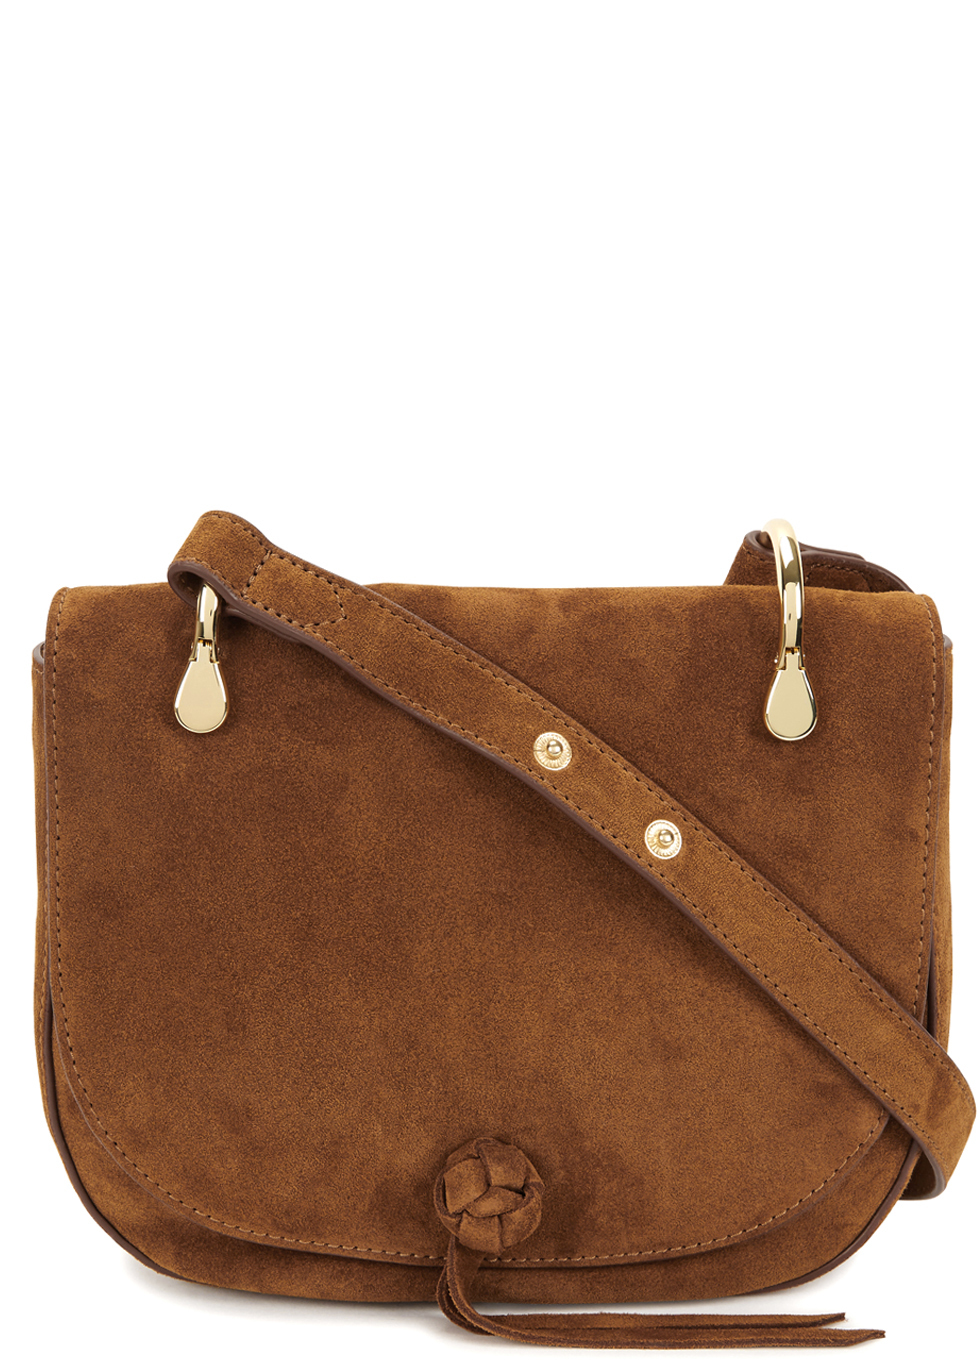 Zoe Tawny Suede Shoulder Bag - predominant colour: tan; occasions: casual, creative work; type of pattern: standard; style: saddle; length: across body/long; size: standard; material: suede; pattern: plain; finish: plain; season: a/w 2016; wardrobe: highlight